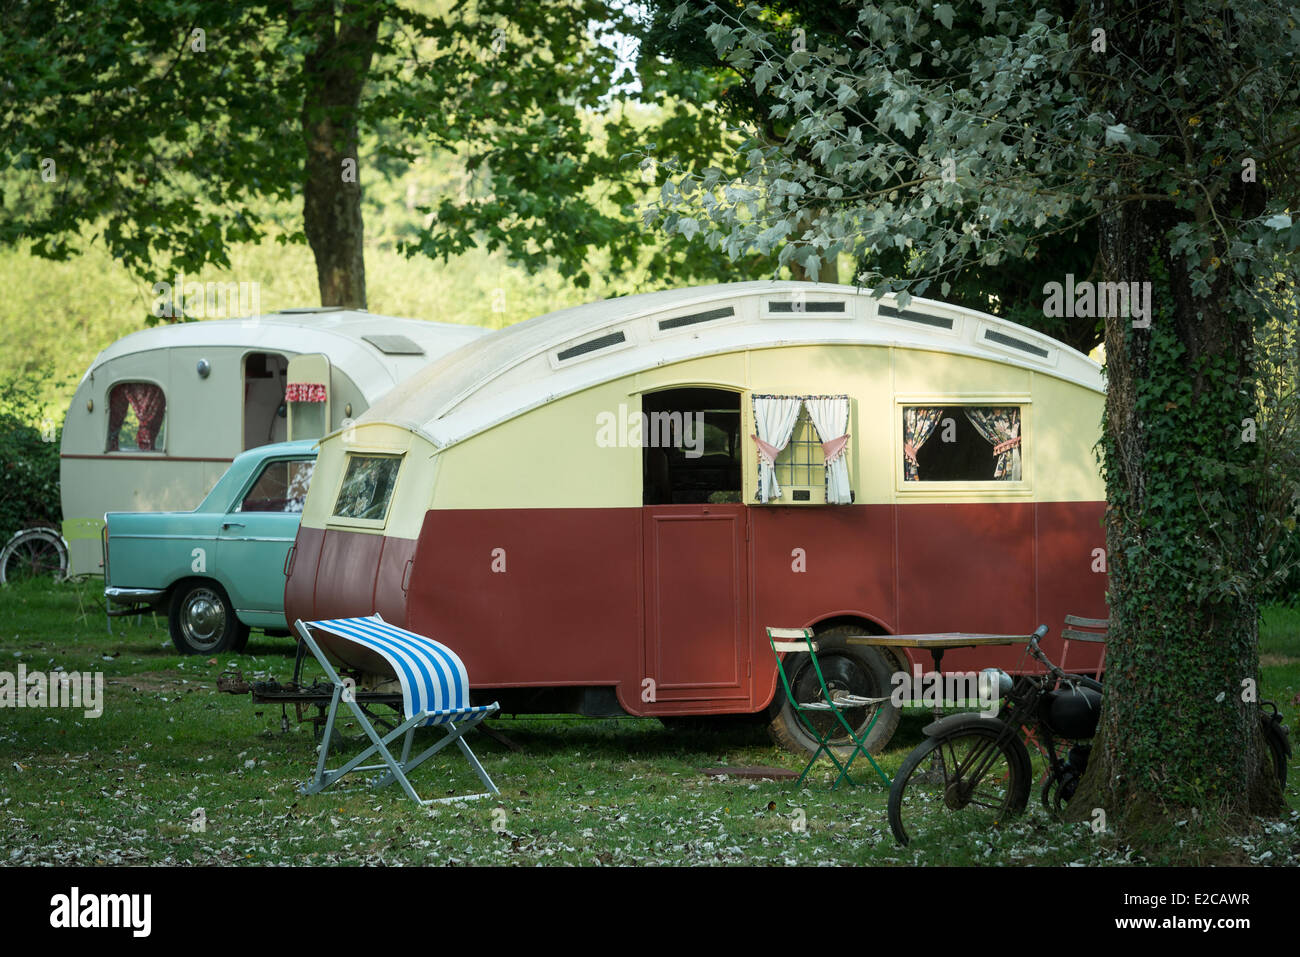 classic caravan stockfotos classic caravan bilder alamy. Black Bedroom Furniture Sets. Home Design Ideas